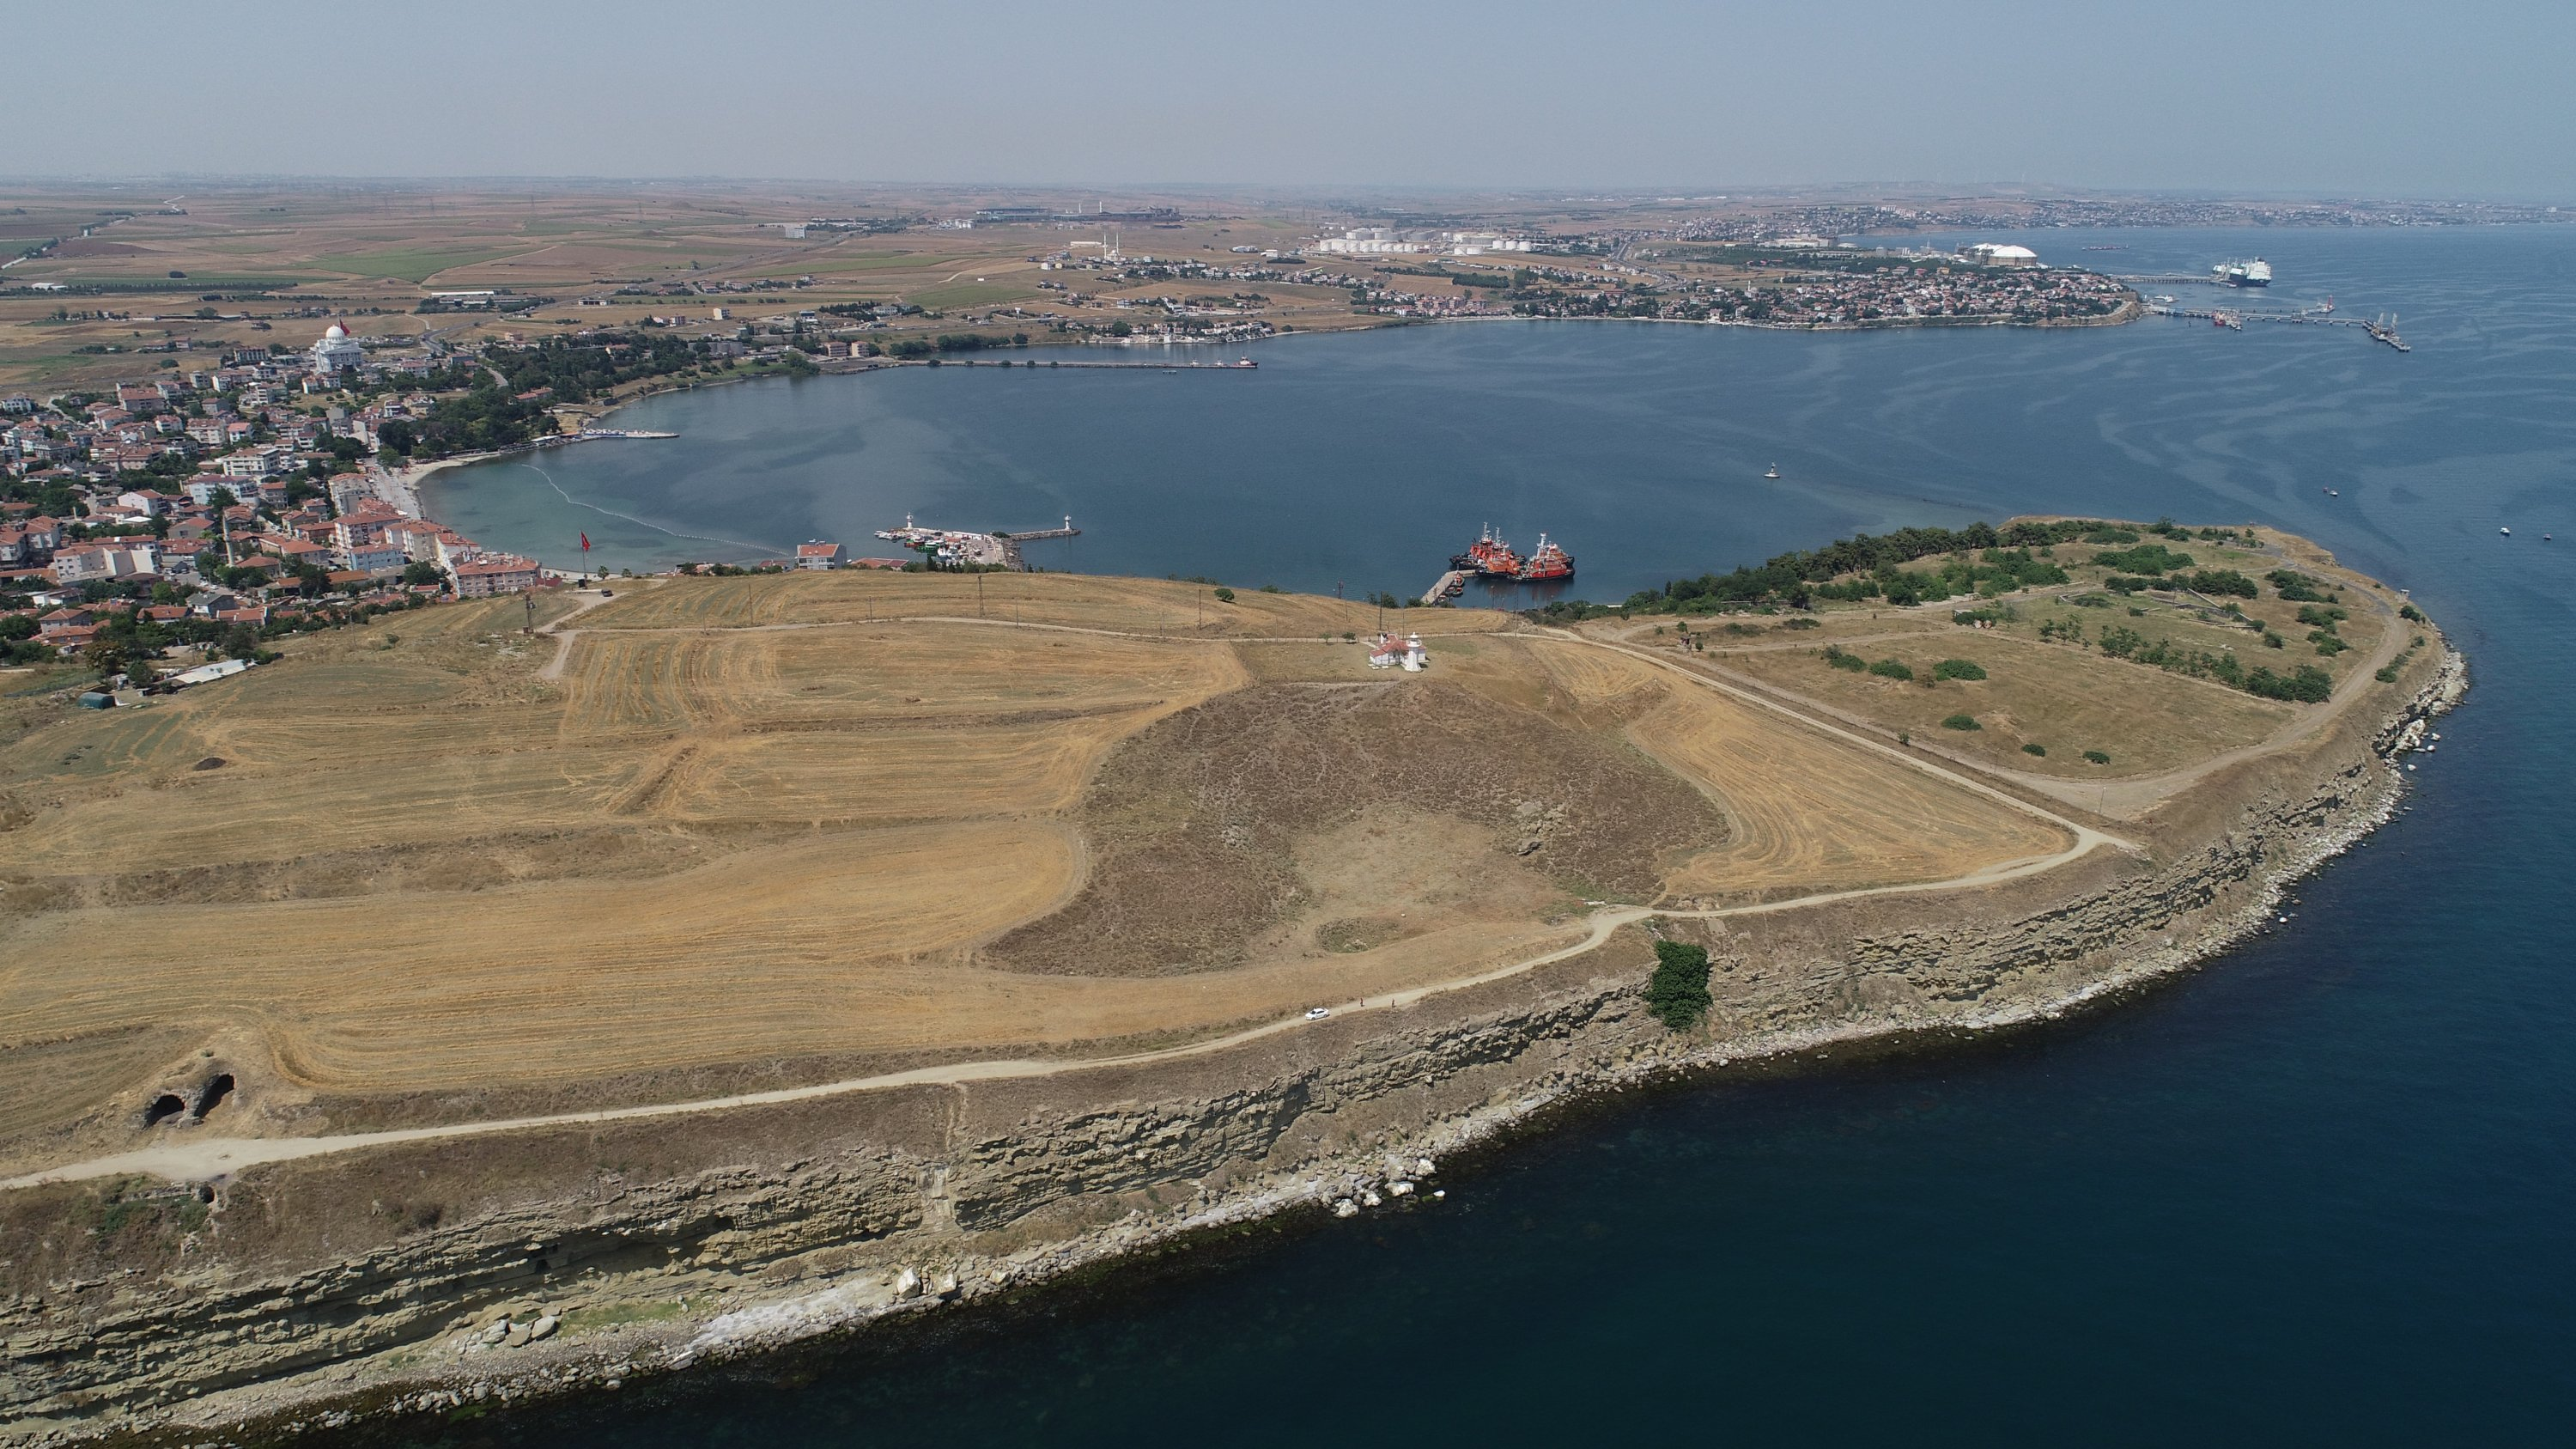 A general view from the theater area in the ancient city of Perinthos, Tekirdağ, northwestern Turkey, Aug. 1, 2021. (AA Photo)